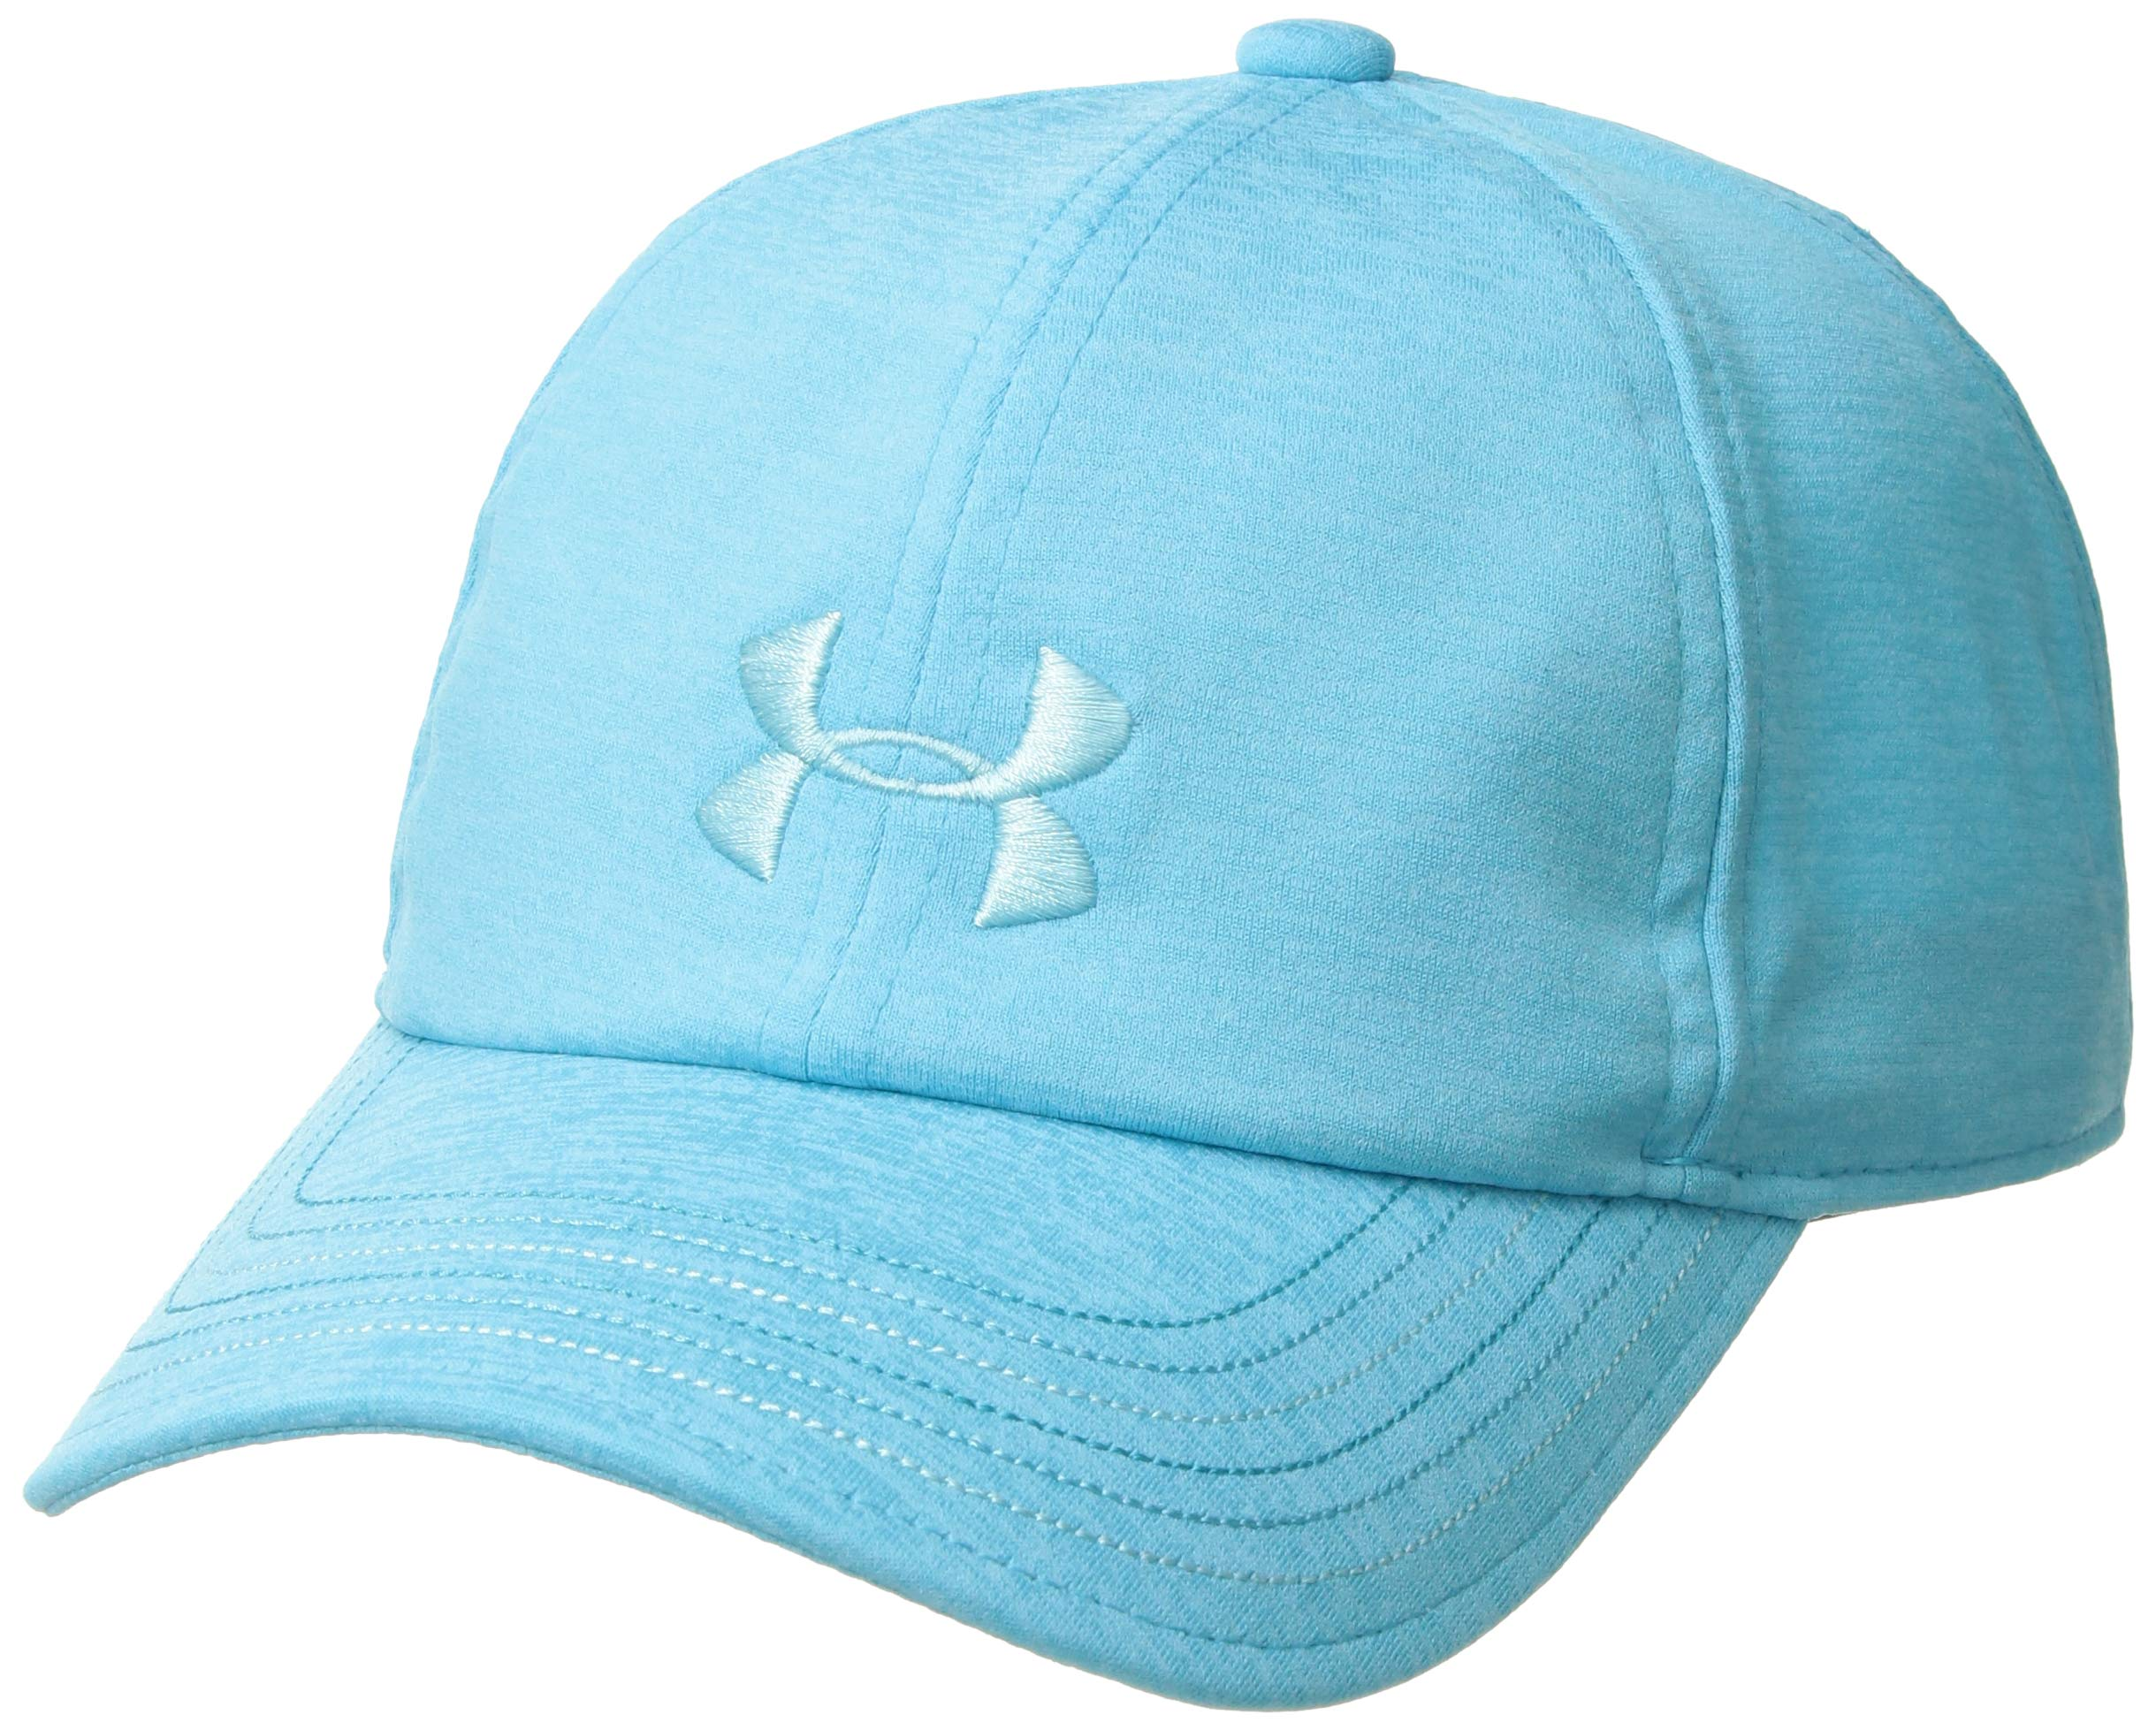 Under Armour Girls' Renegade Twist Cap, Venetian Blue (448)/Venetian Blue, One Size